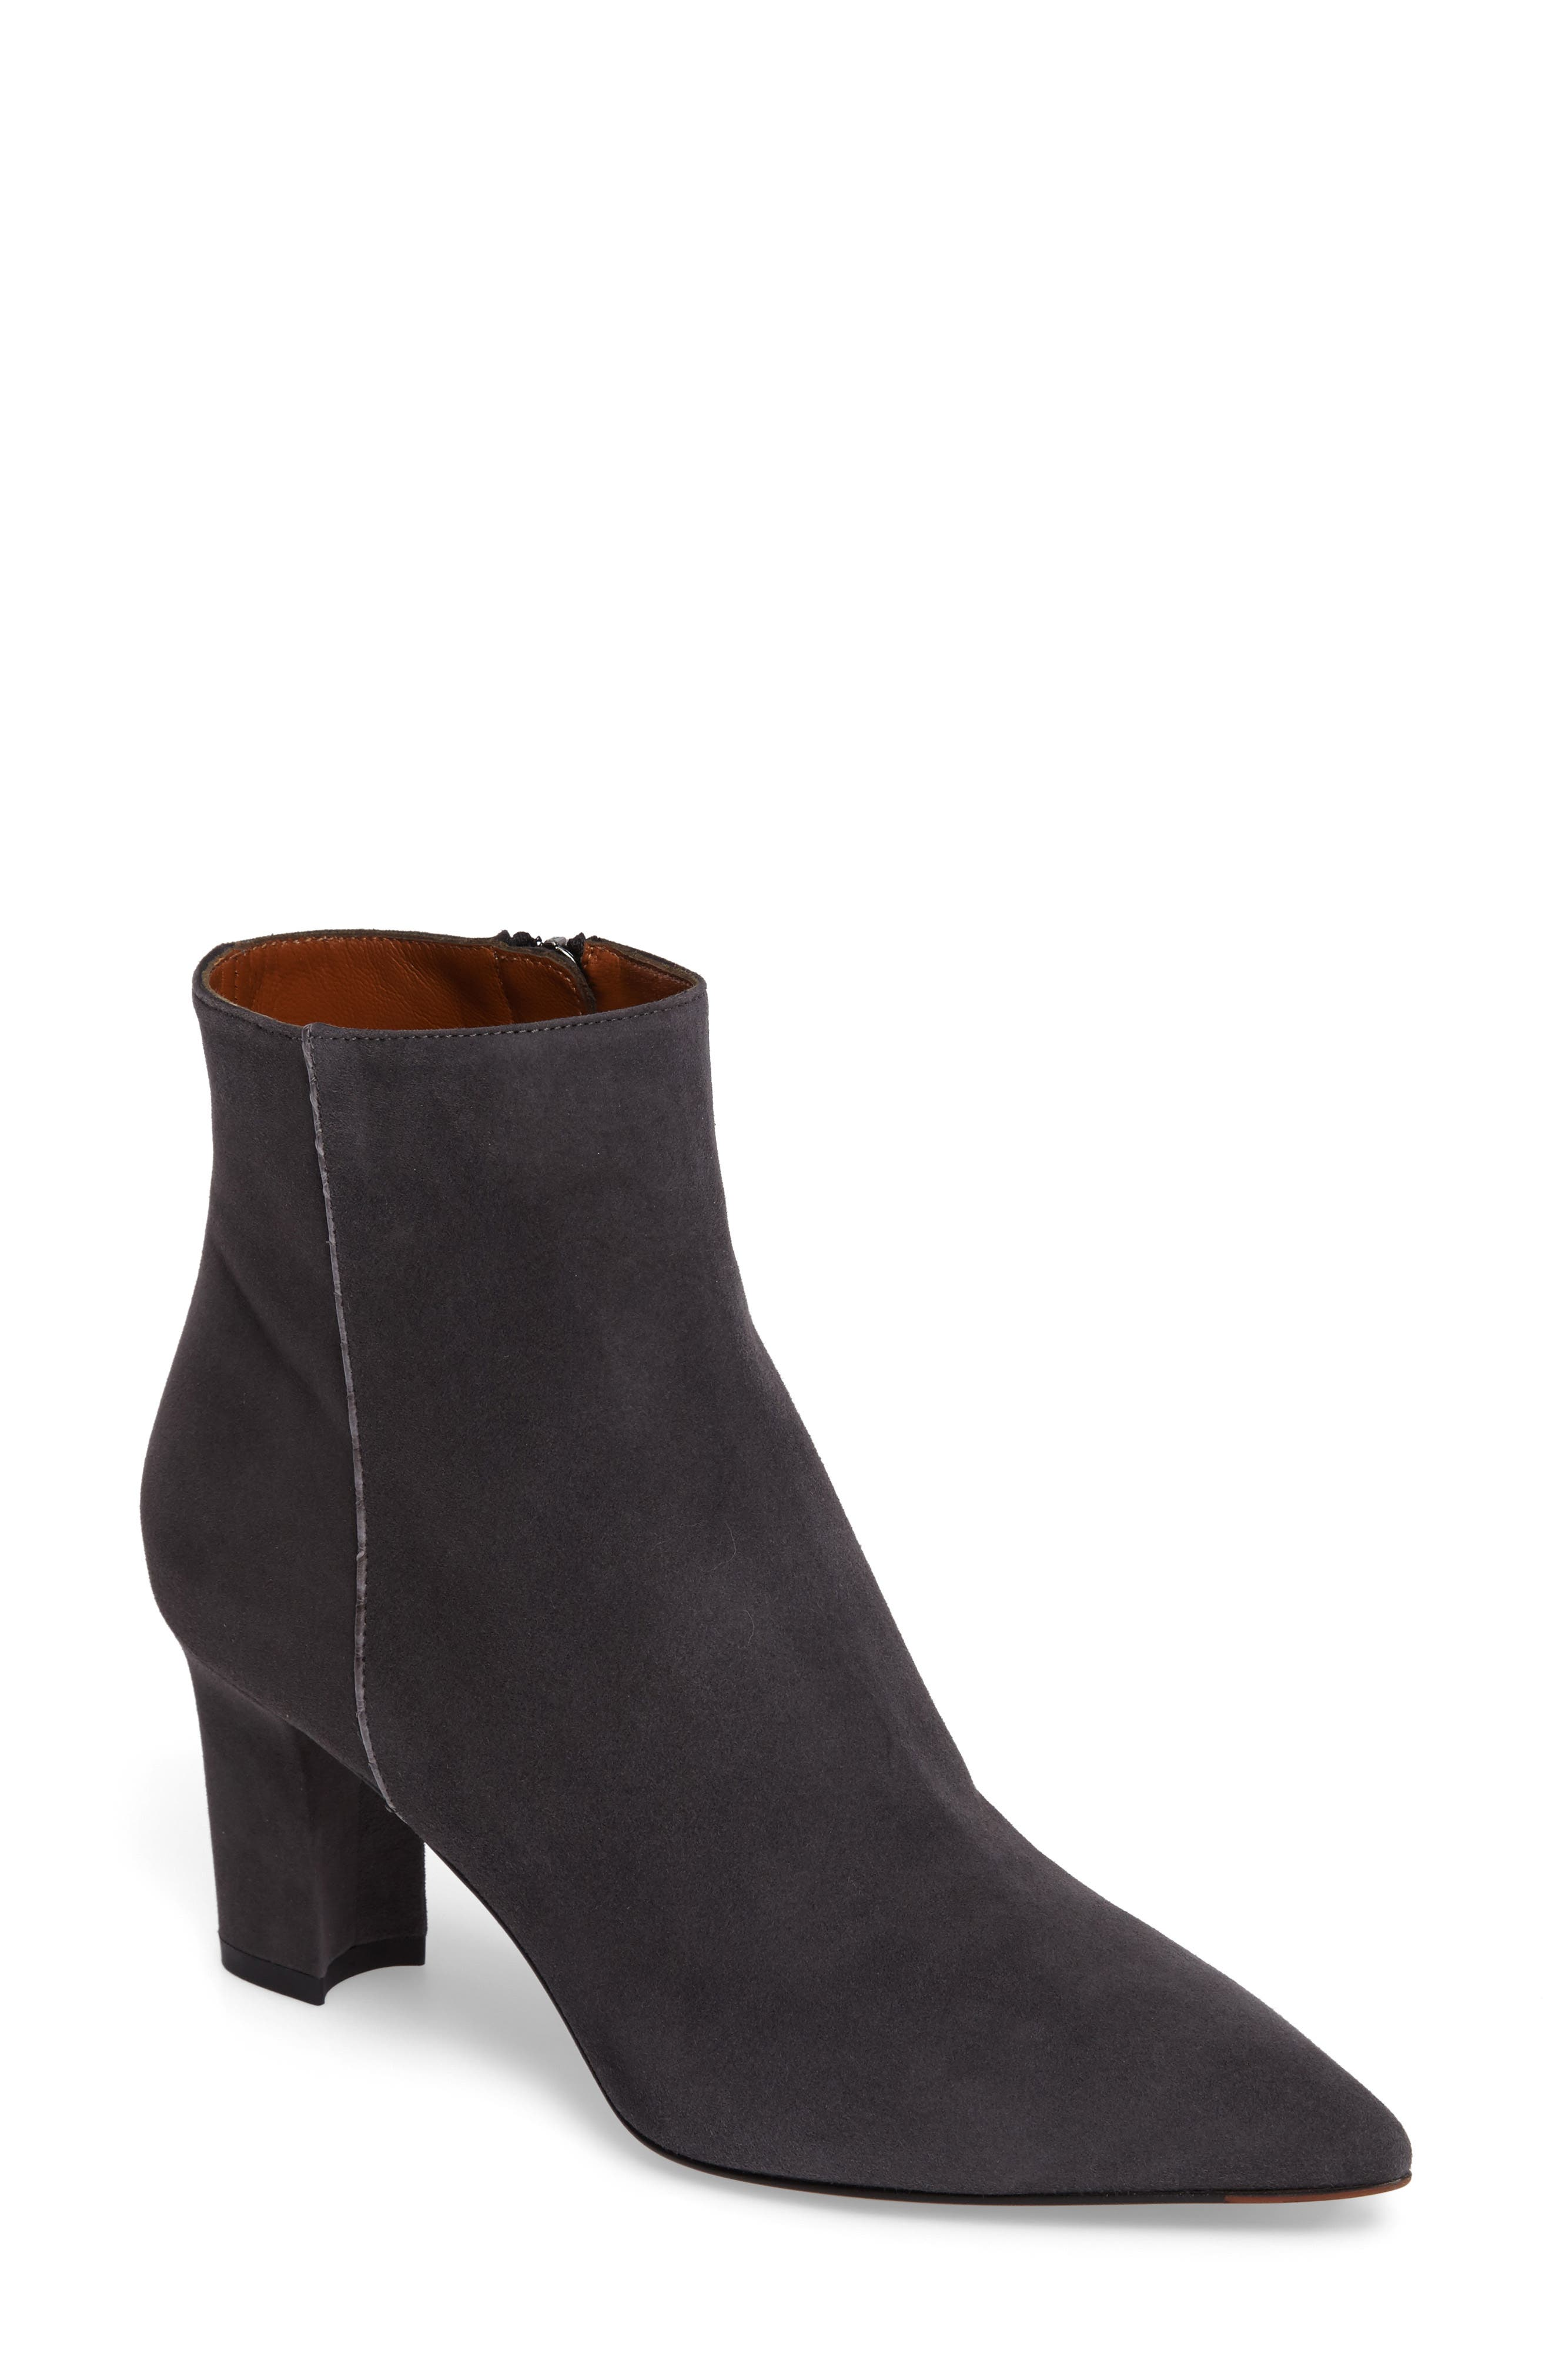 Maia Weatherproof Pointed Toe Bootie,                         Main,                         color, Anthracite Suede